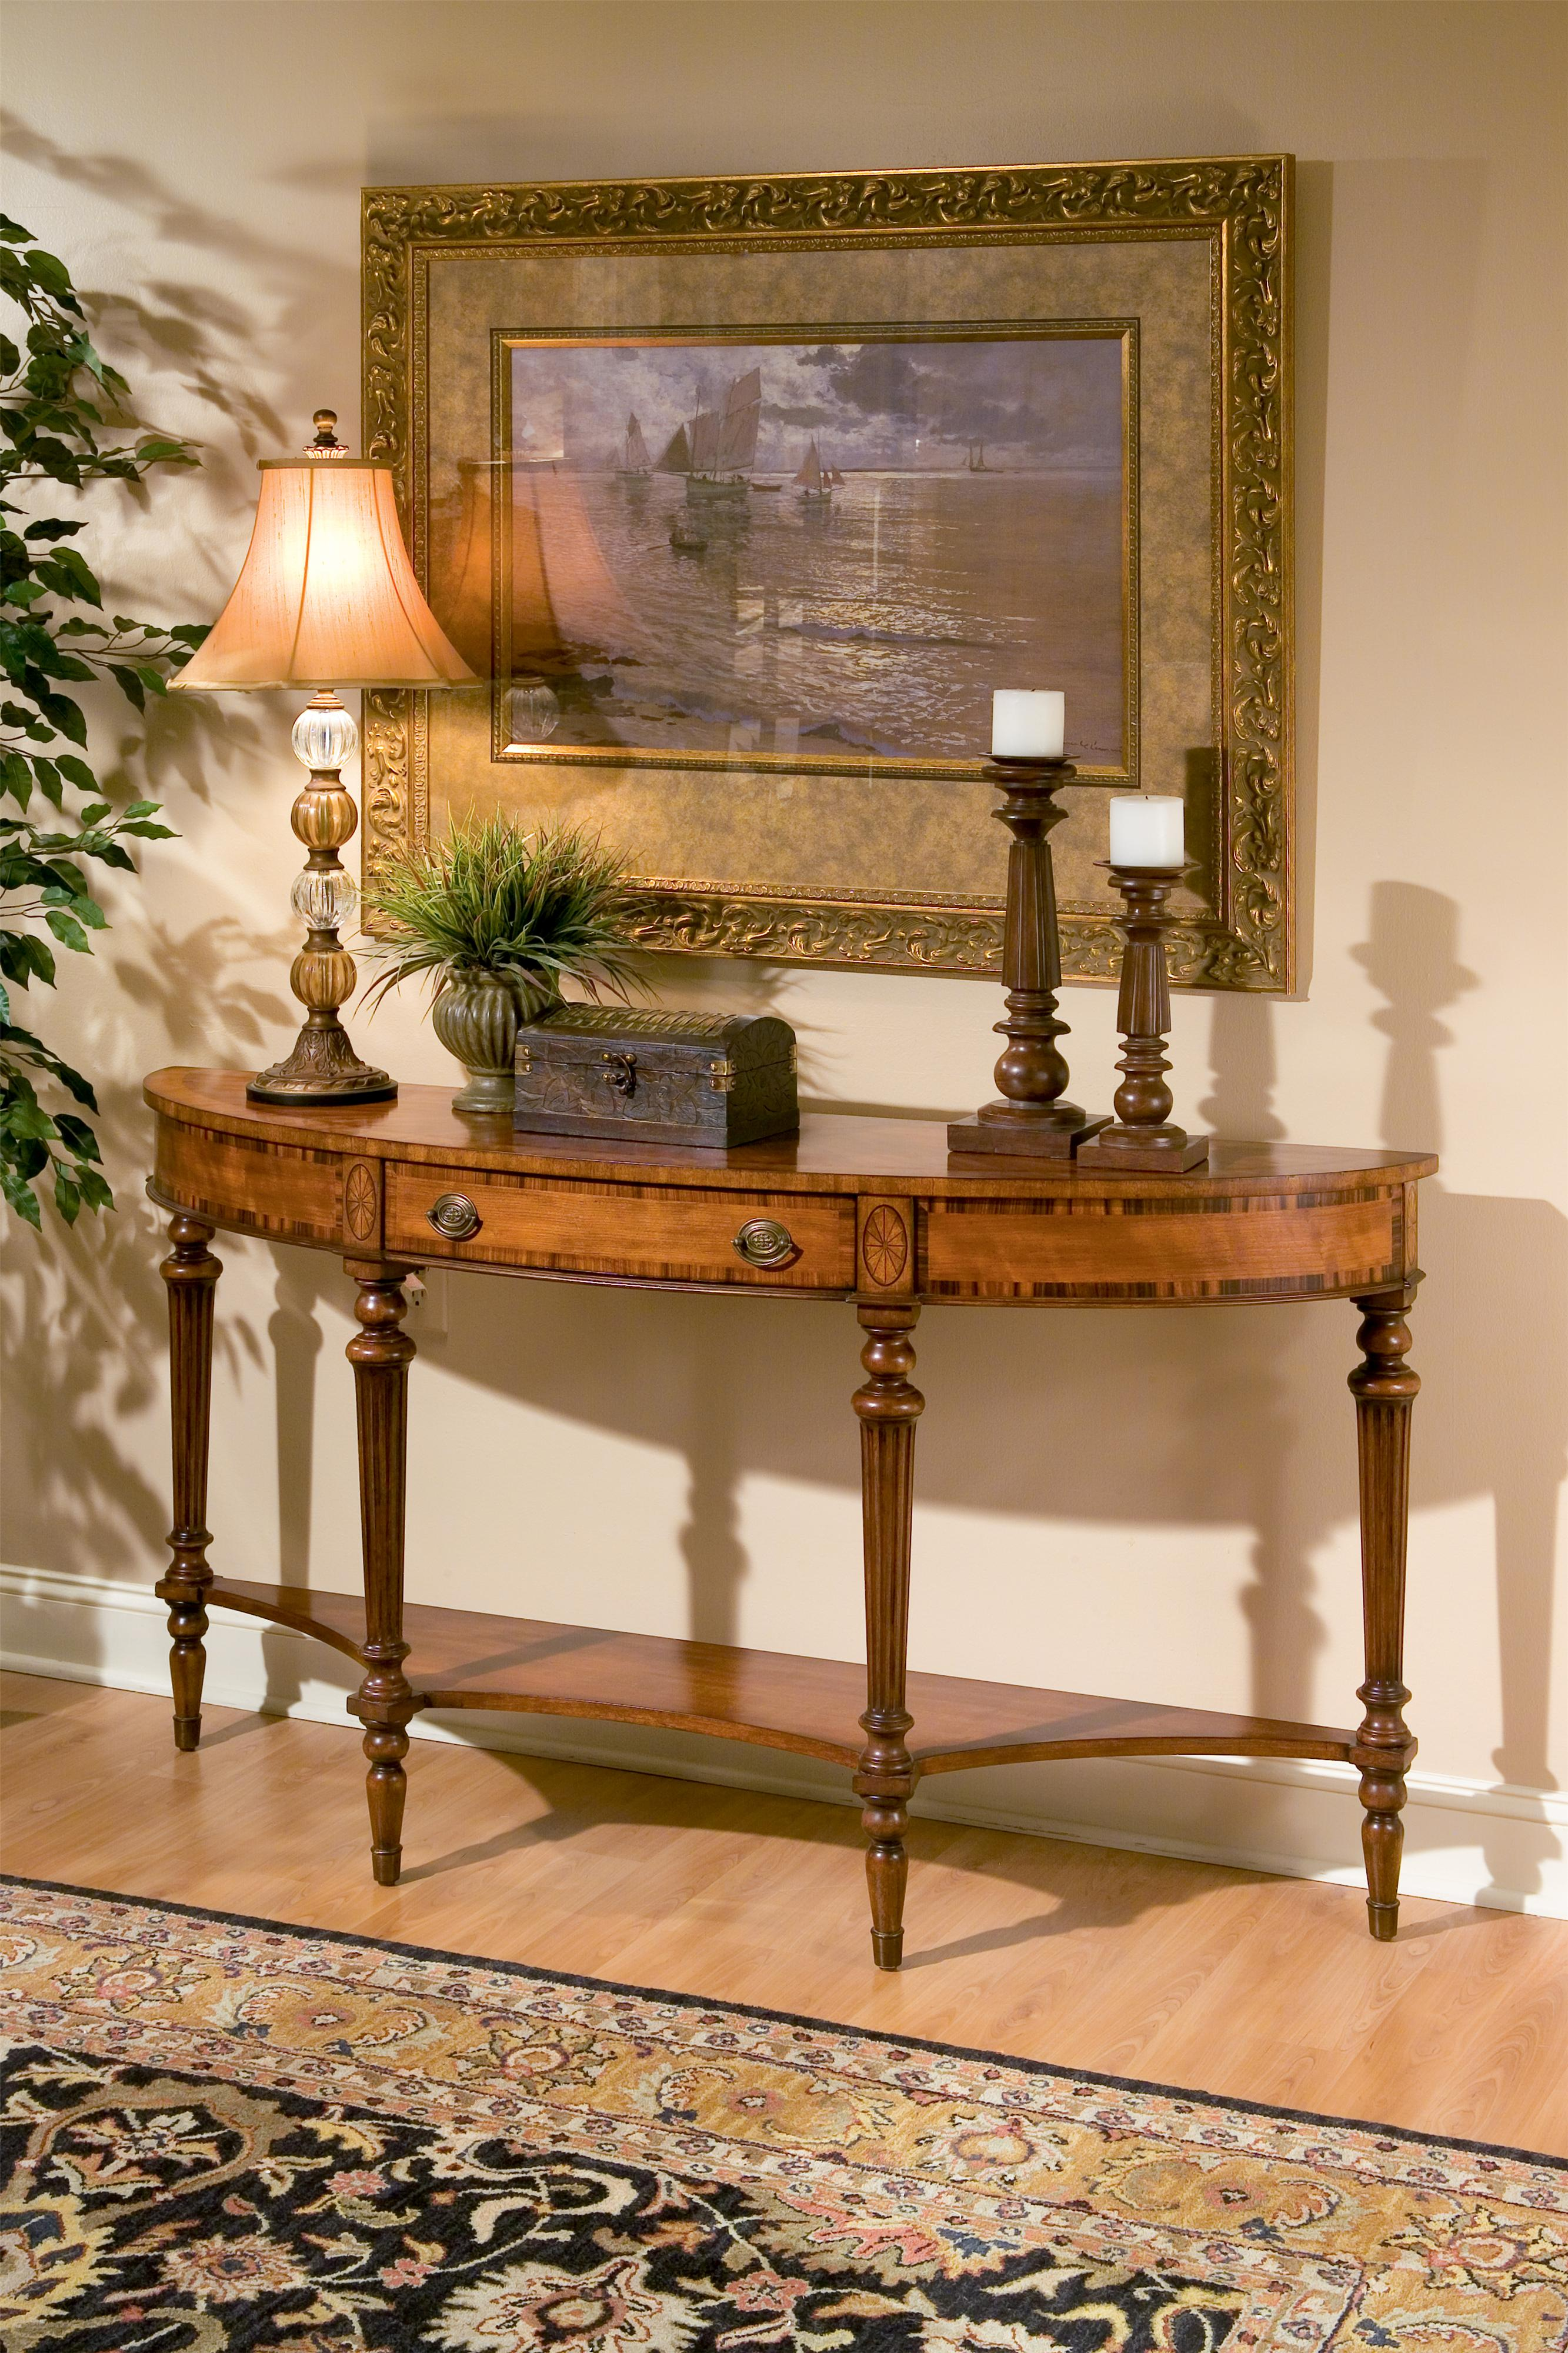 Butler Specialty Company Connoisseur's Demilune Console - Item Number: 1510090